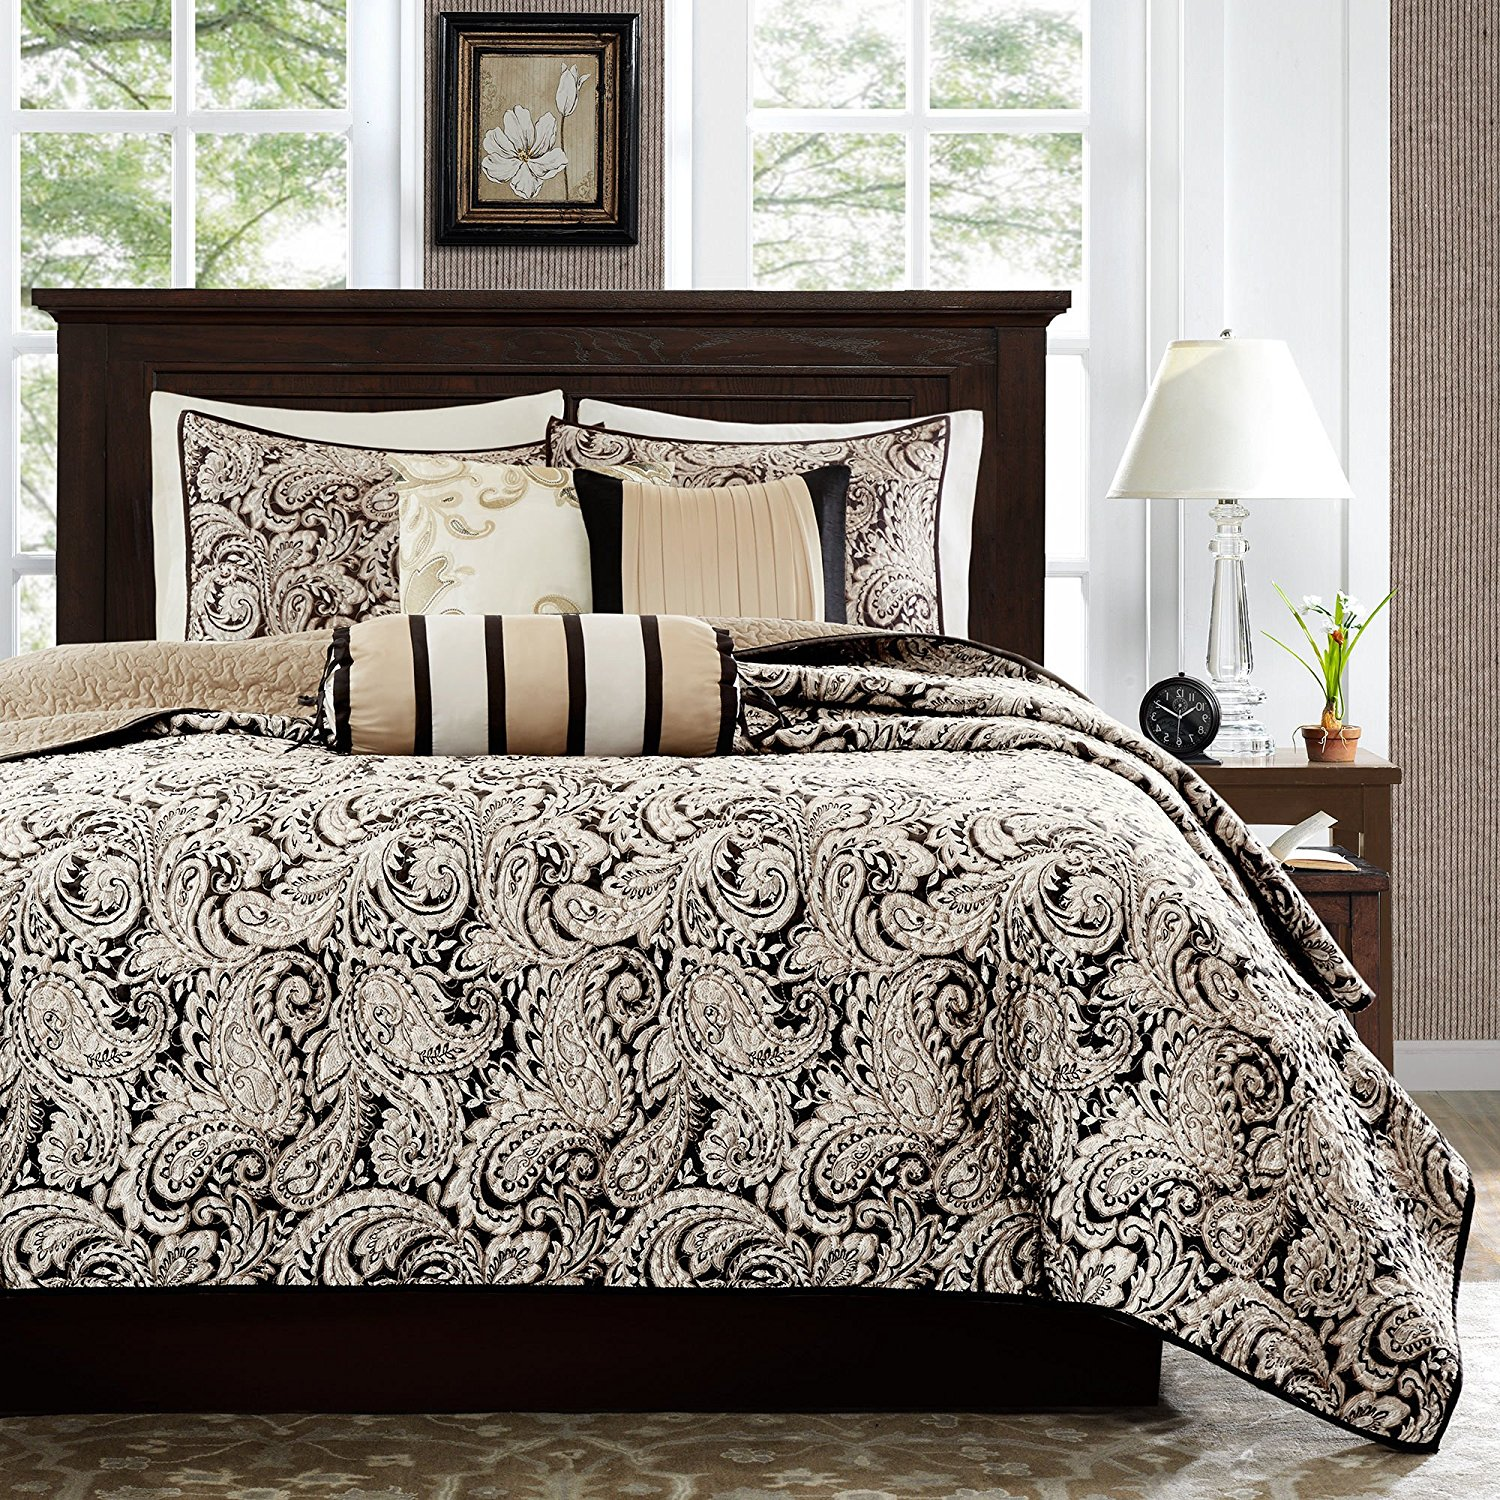 6 Pieces Reversible Black Jacquard King Cal King California Paisley Printed Quilted Coverlet Set, Beige White Adult Bedding Master Bedroom Casual Gorgeous Mandala Damask Elegant, Polyester